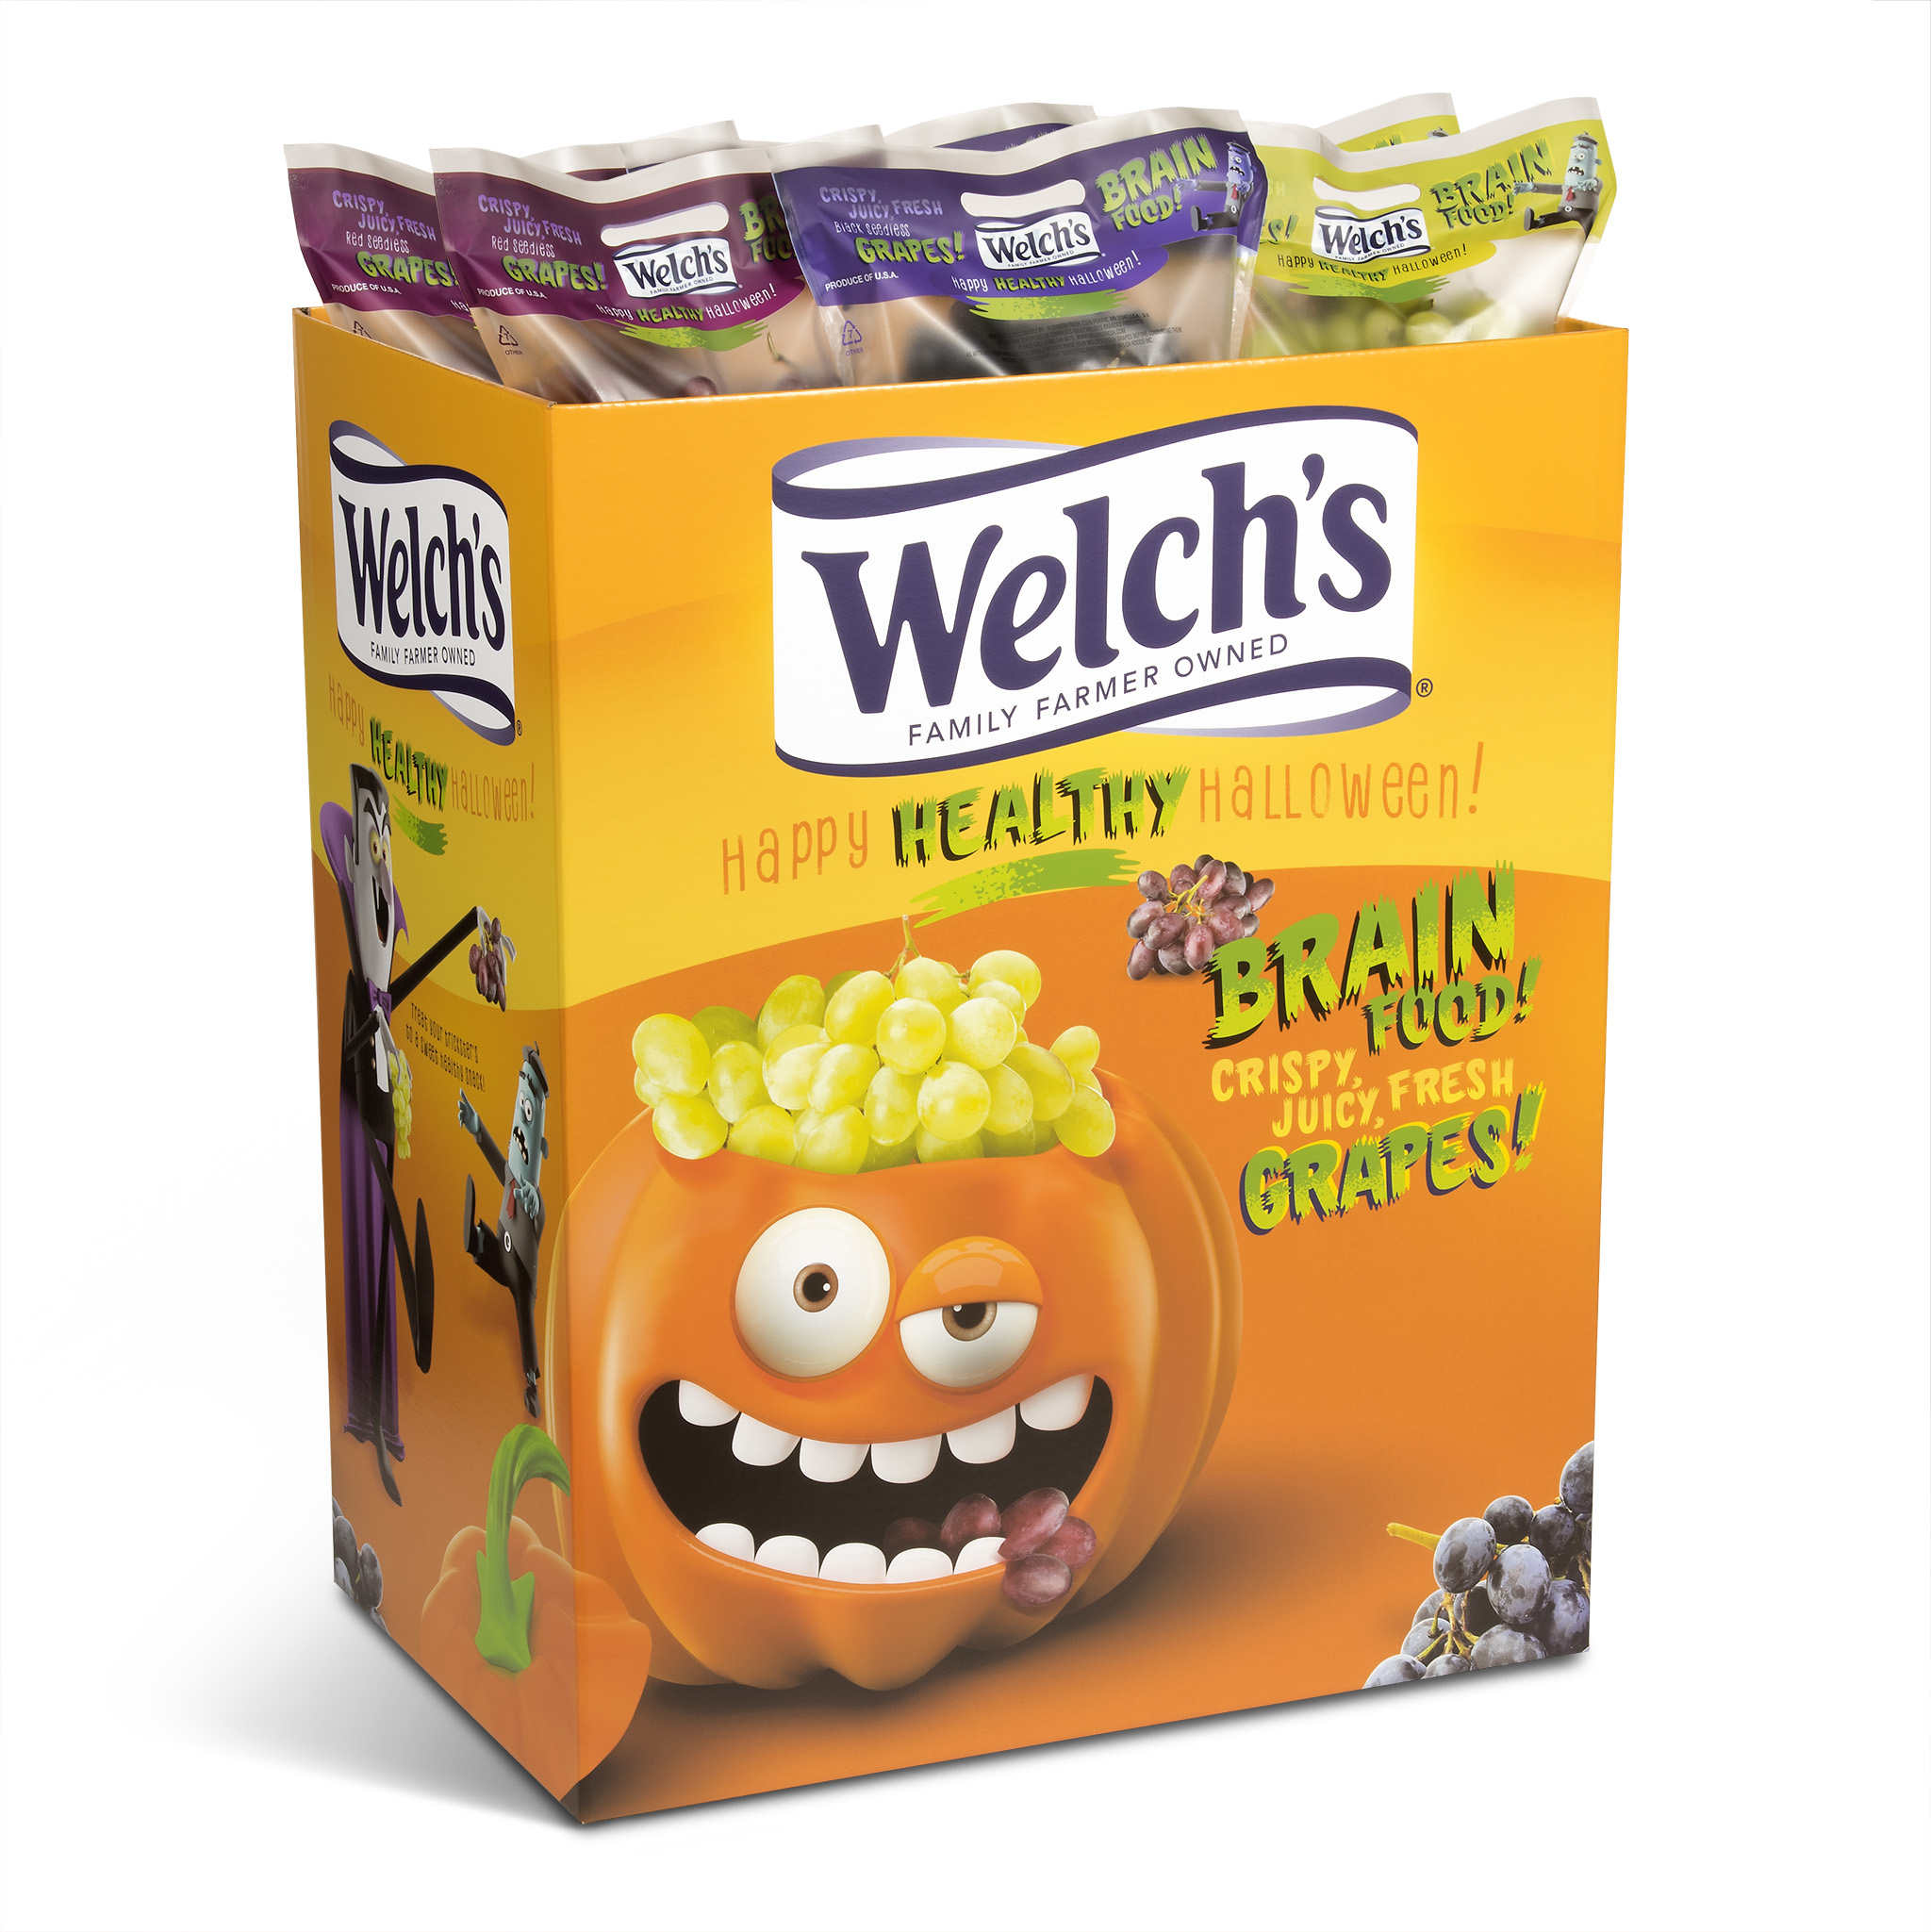 Image showing Welch's grape Halloween floor bin with bags